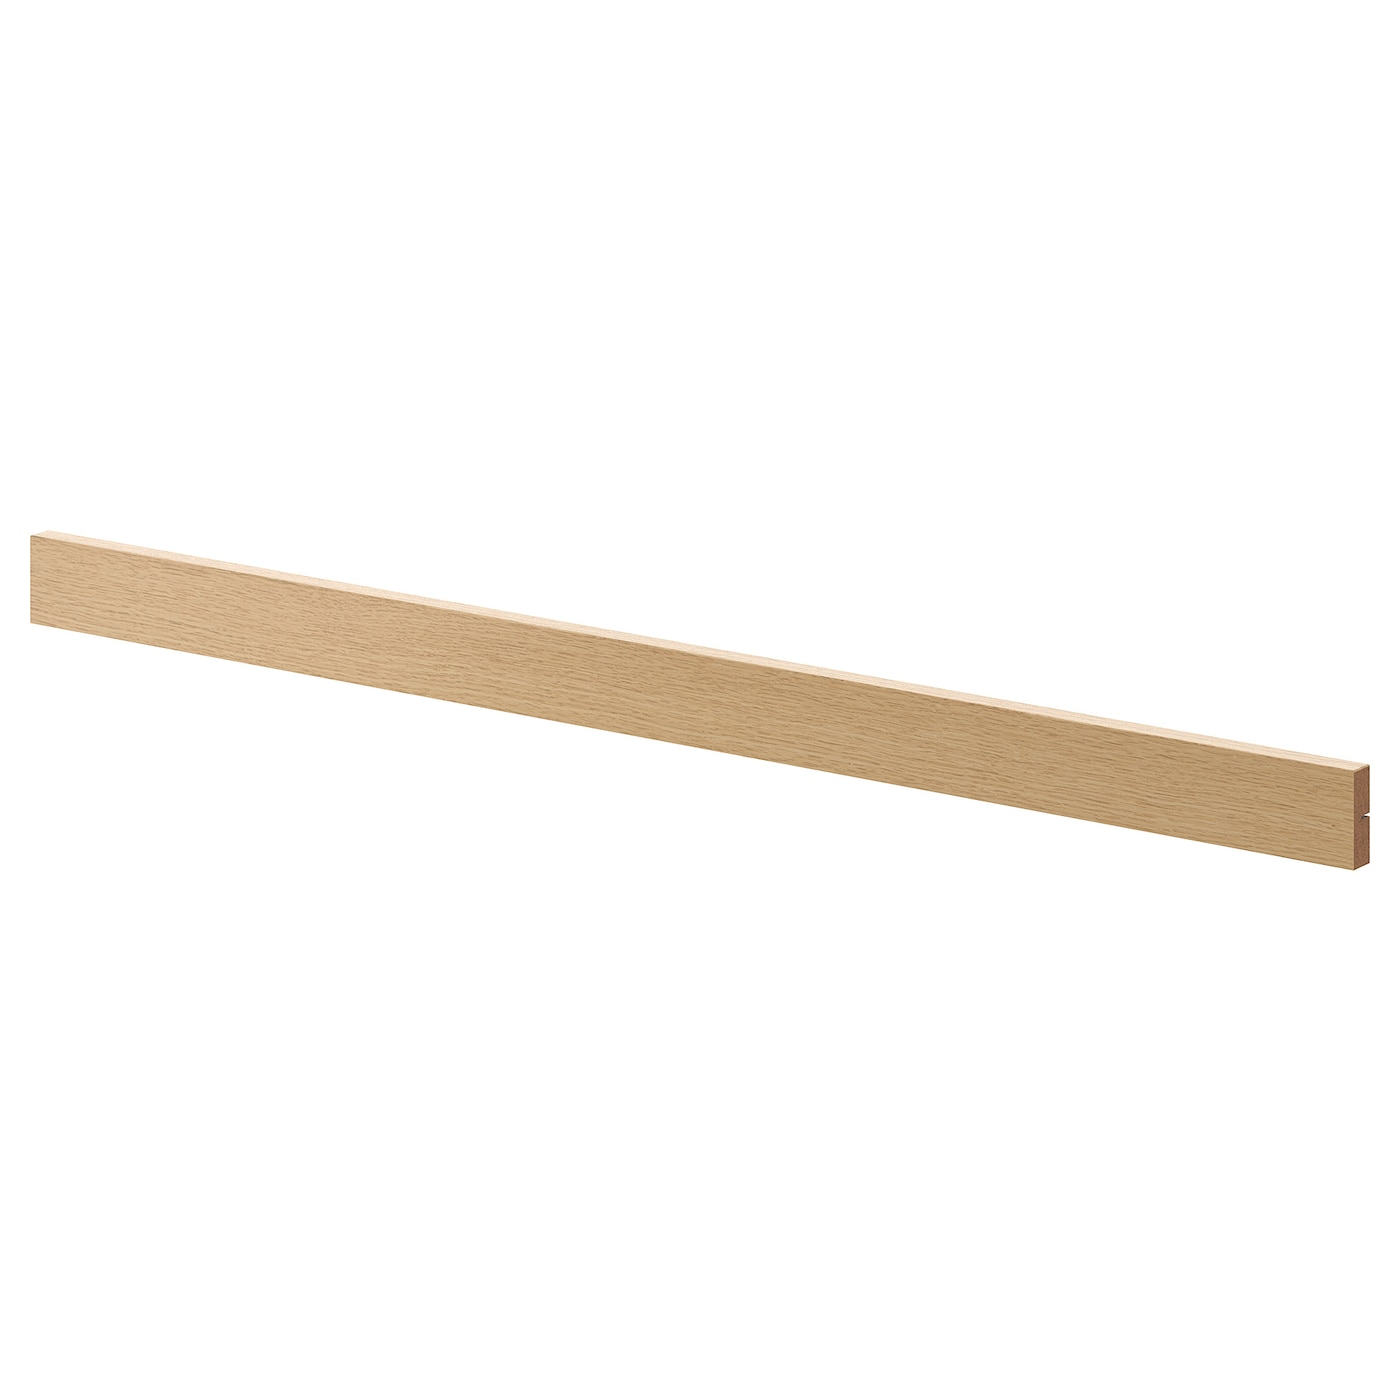 IKEA EKESTAD rounded deco strip/moulding Can be cut to desired length.